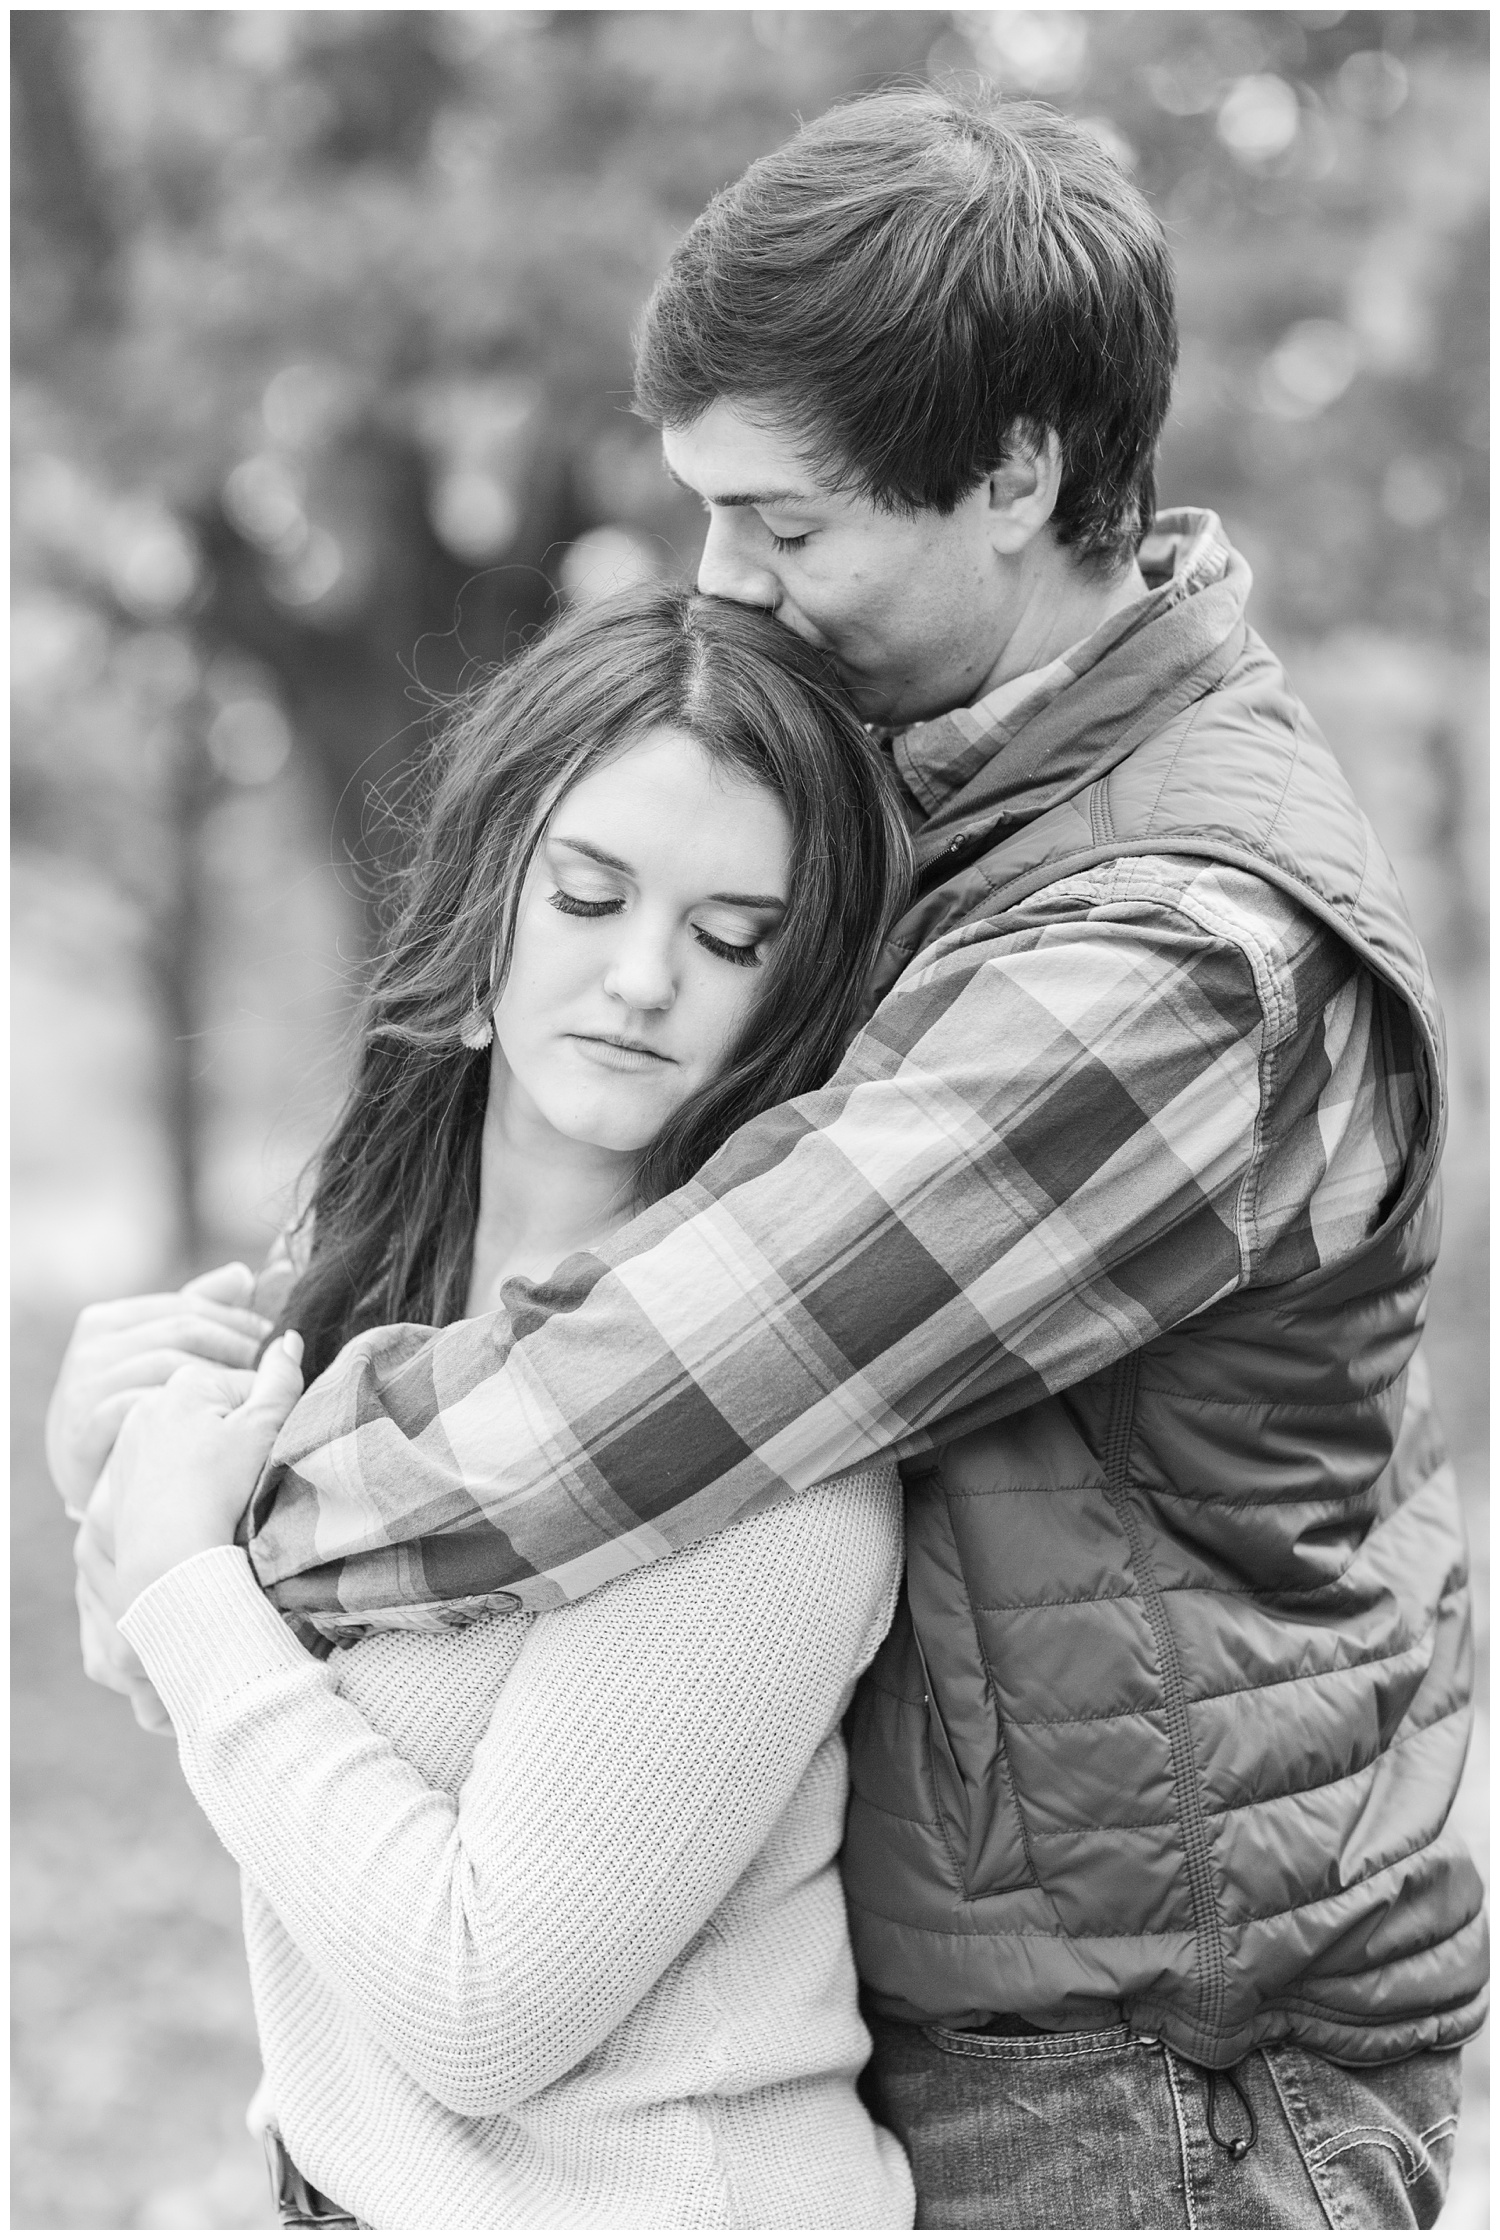 Fall in Iowa, Brady embraces Jenna and kisses her head in the middle of an autumn path at Lost Island Nature Center | CB Studio